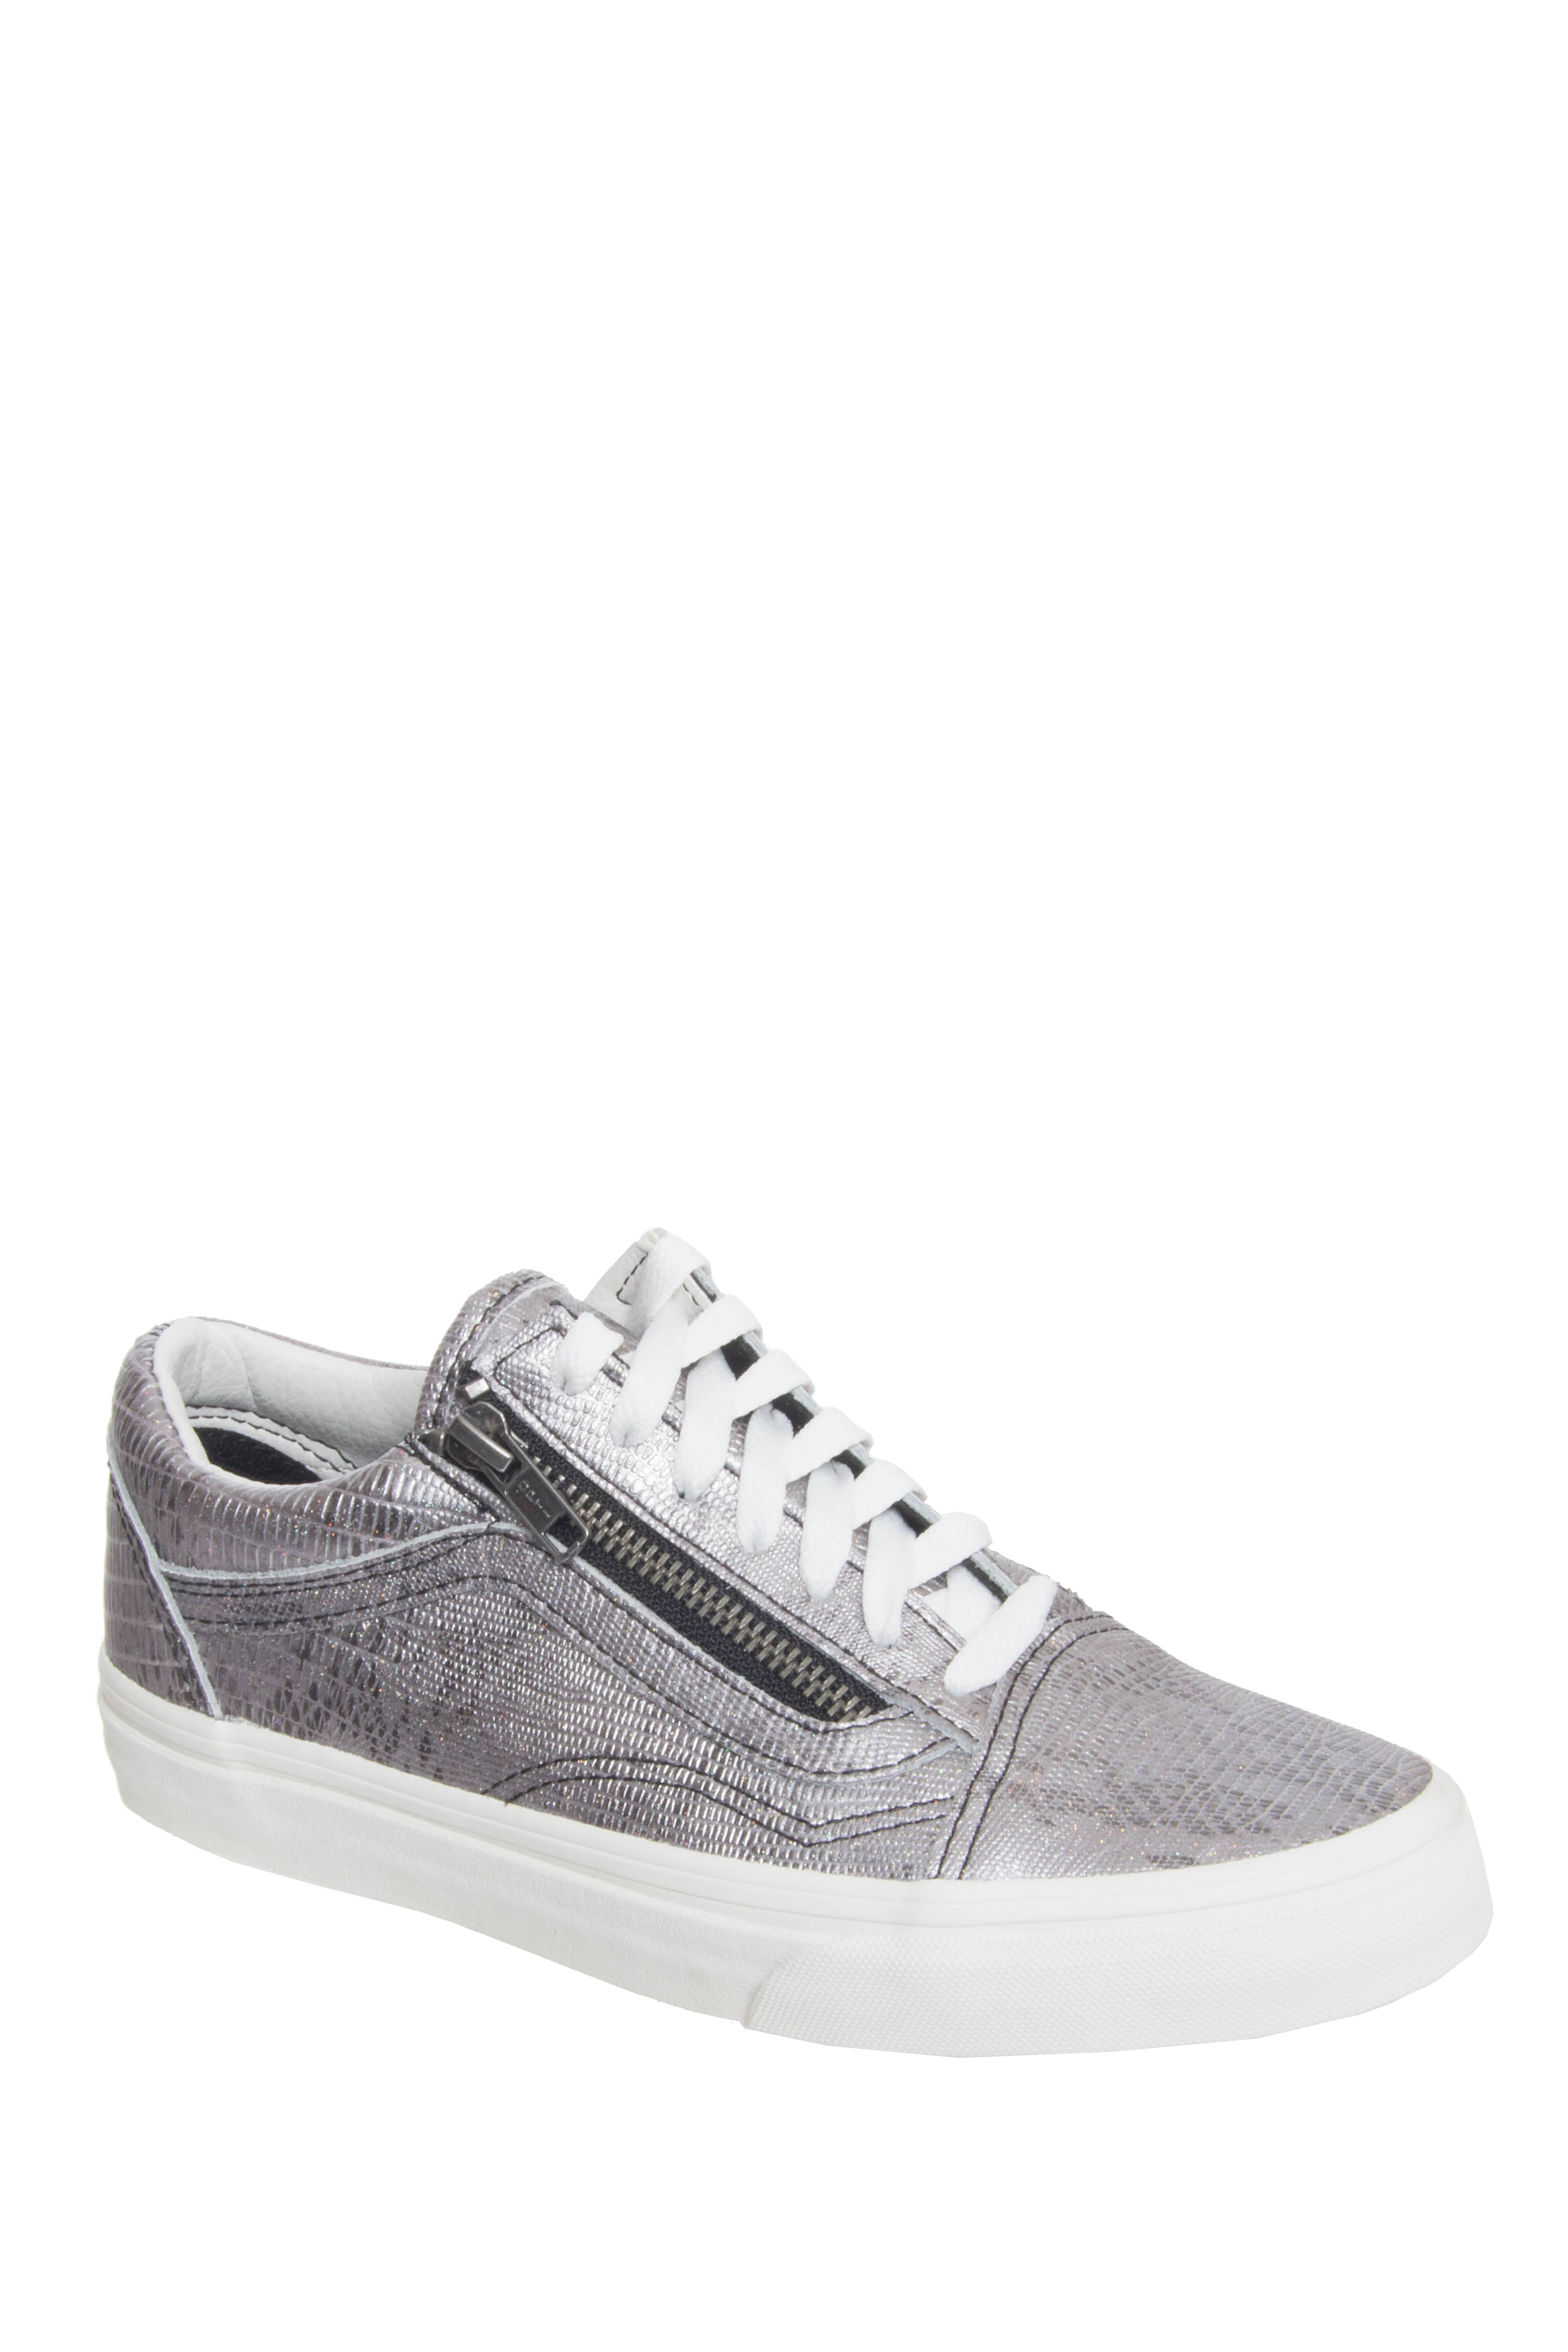 VANS Unisex Old Skool Zip Disco Python Low Top Sneakers - Black / Blanc De Blanc